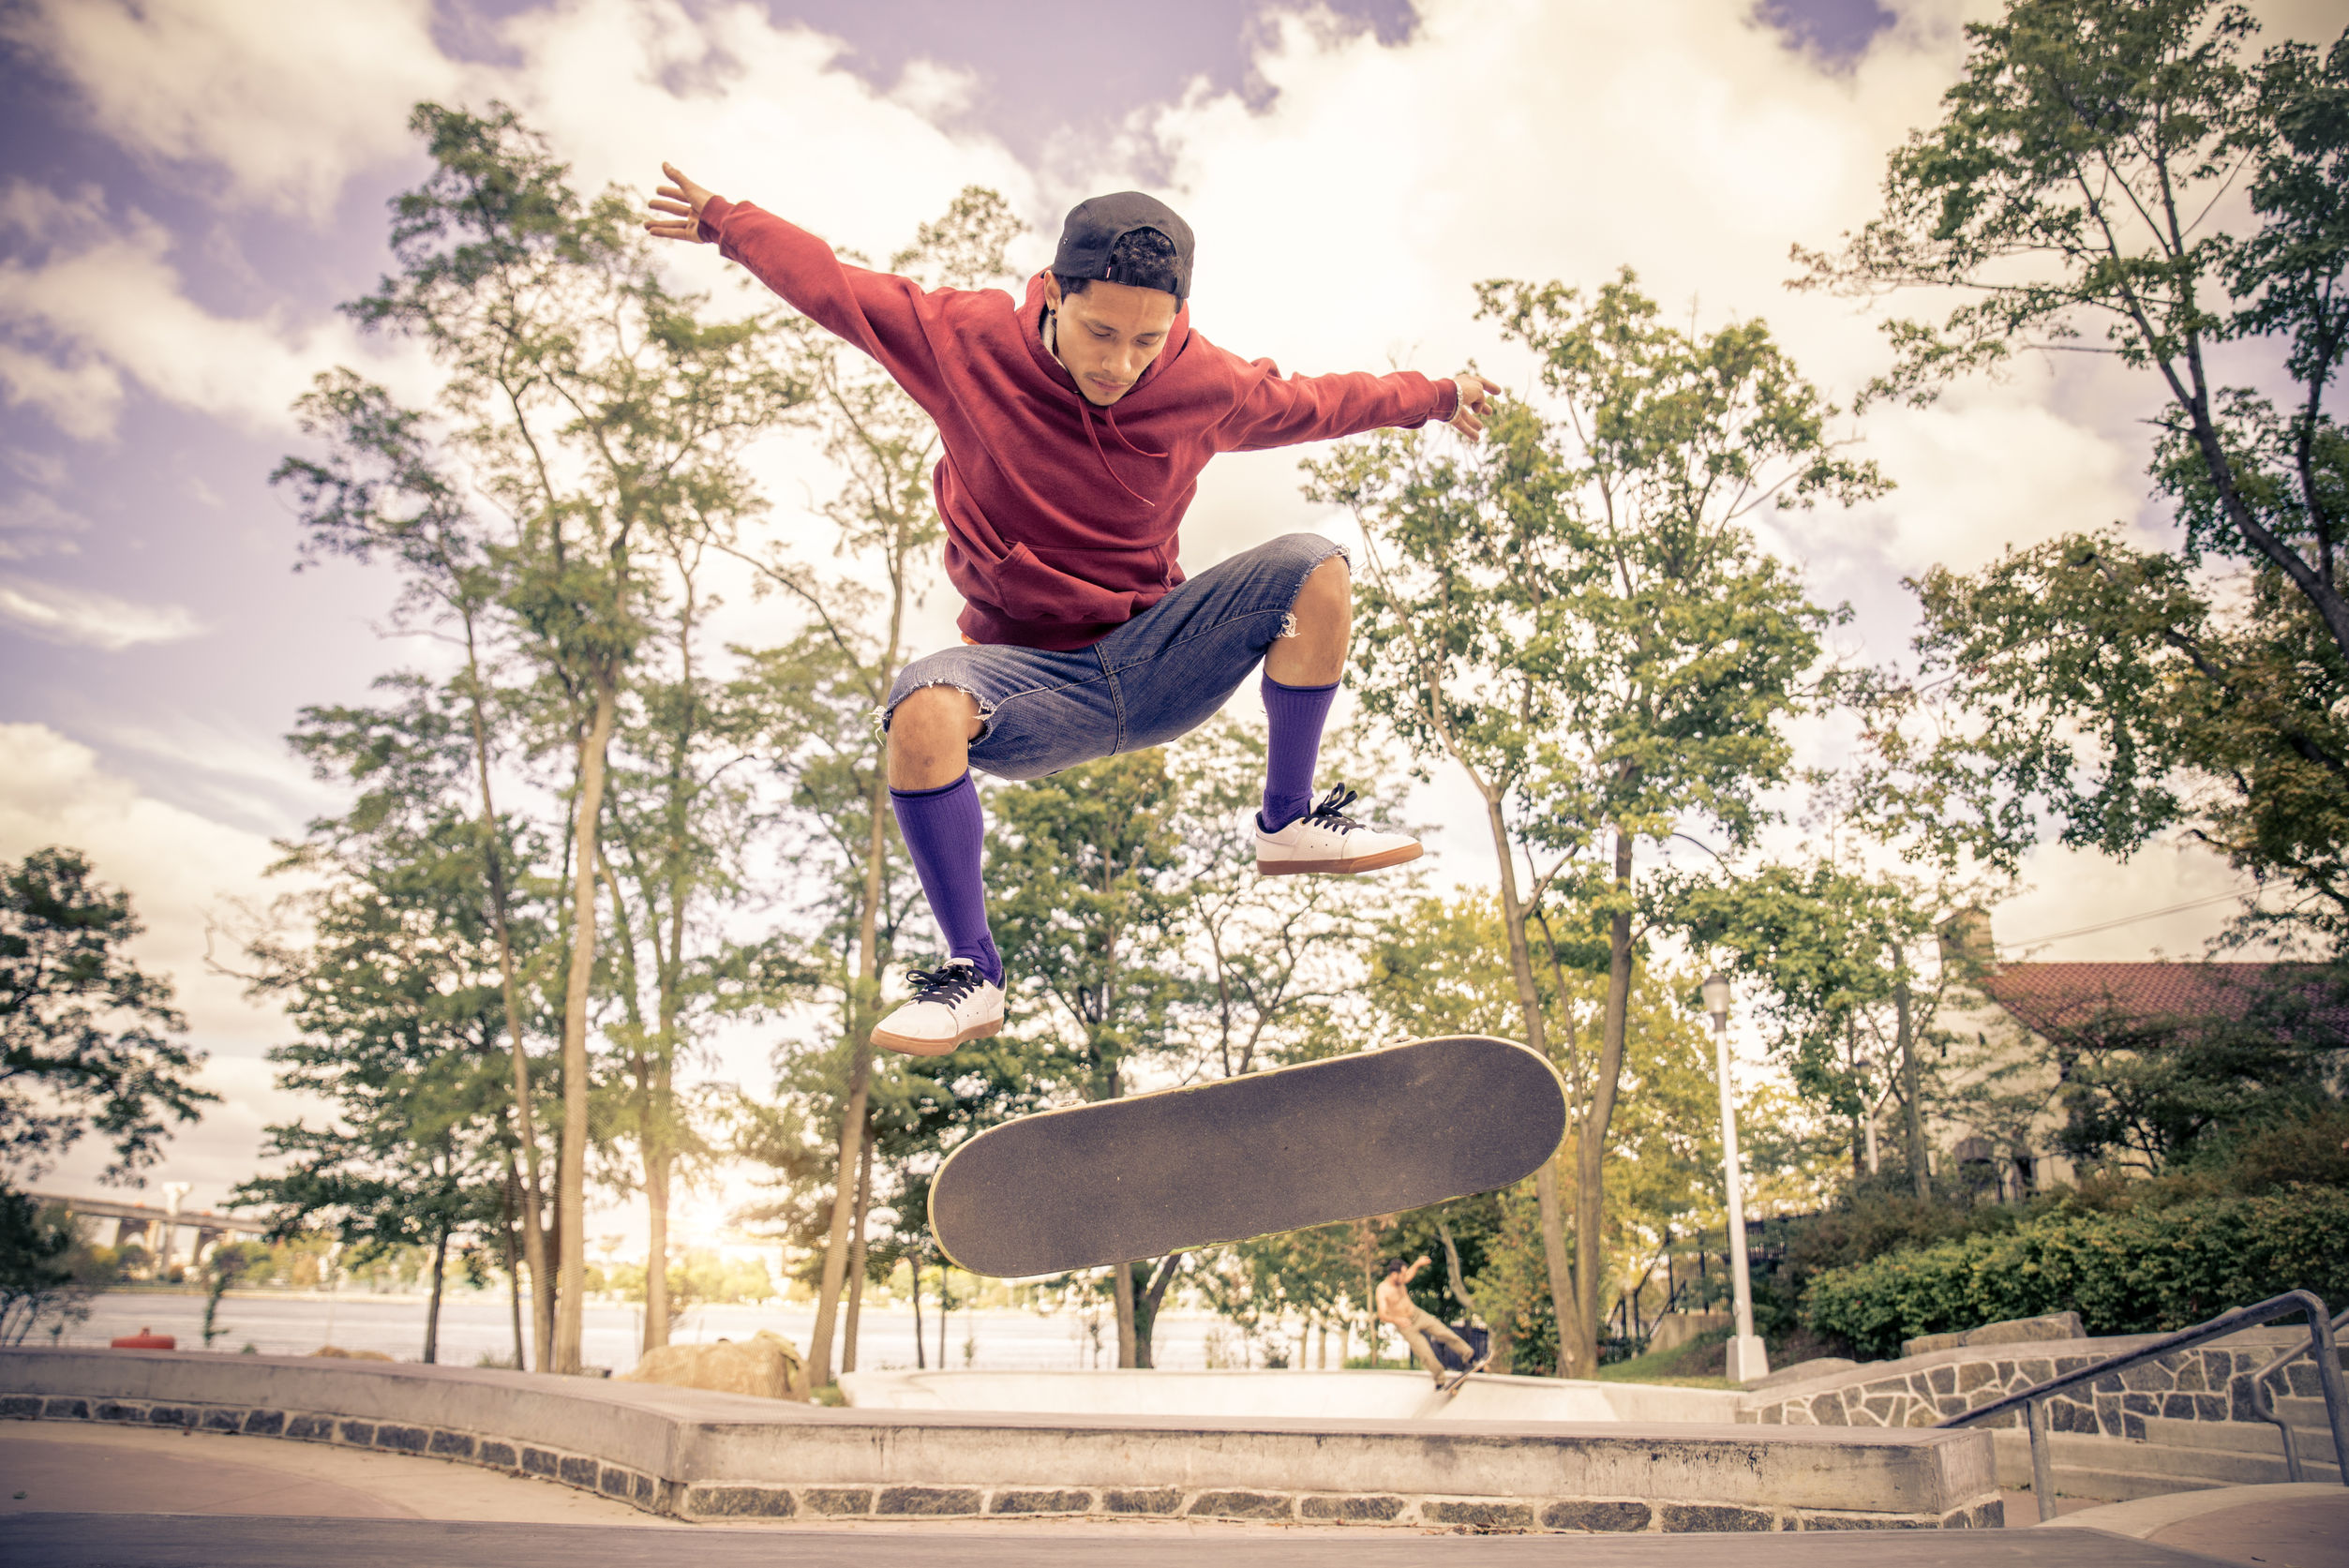 man skateboarding what skateboard taught me about resilience and progression